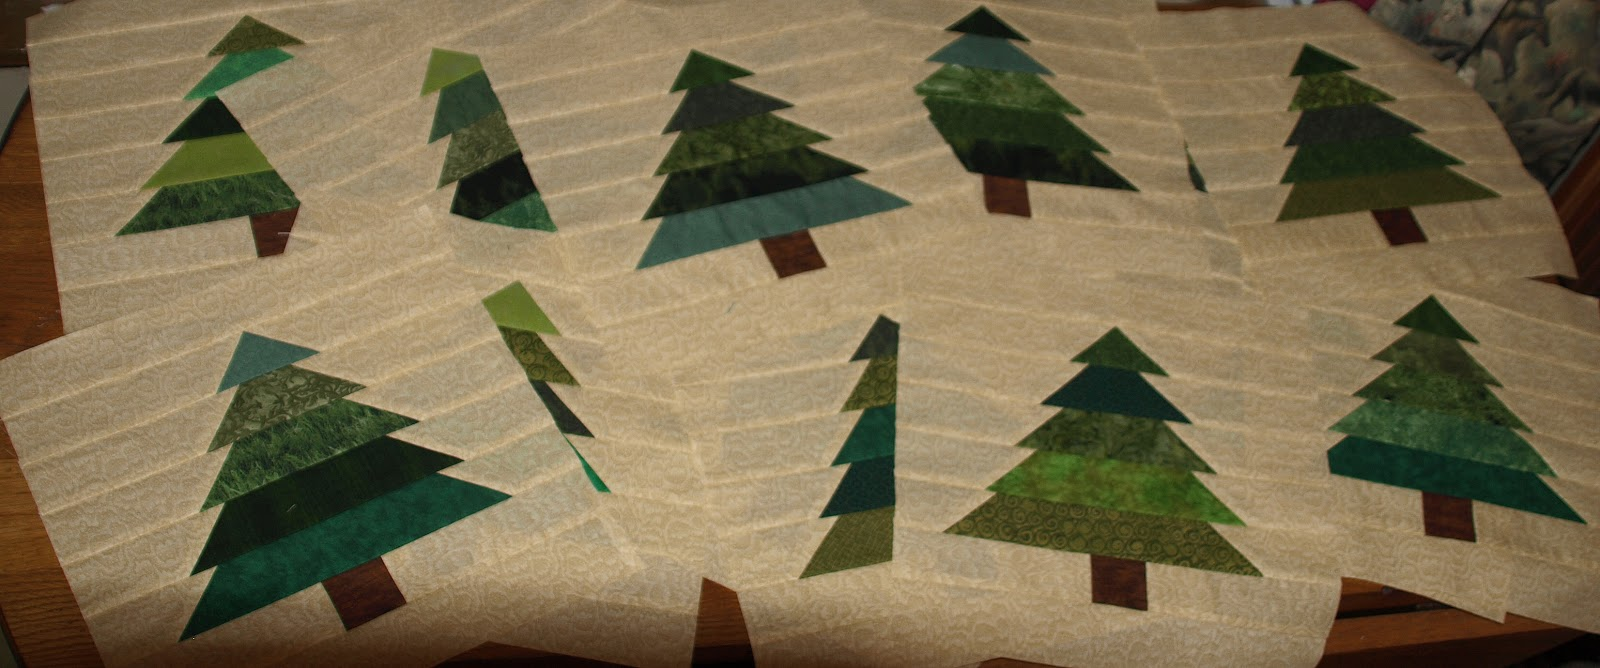 Lovin' Life At The End Of The Dirt Road: A Forest of Trees in the ... : pine tree quilt block - Adamdwight.com